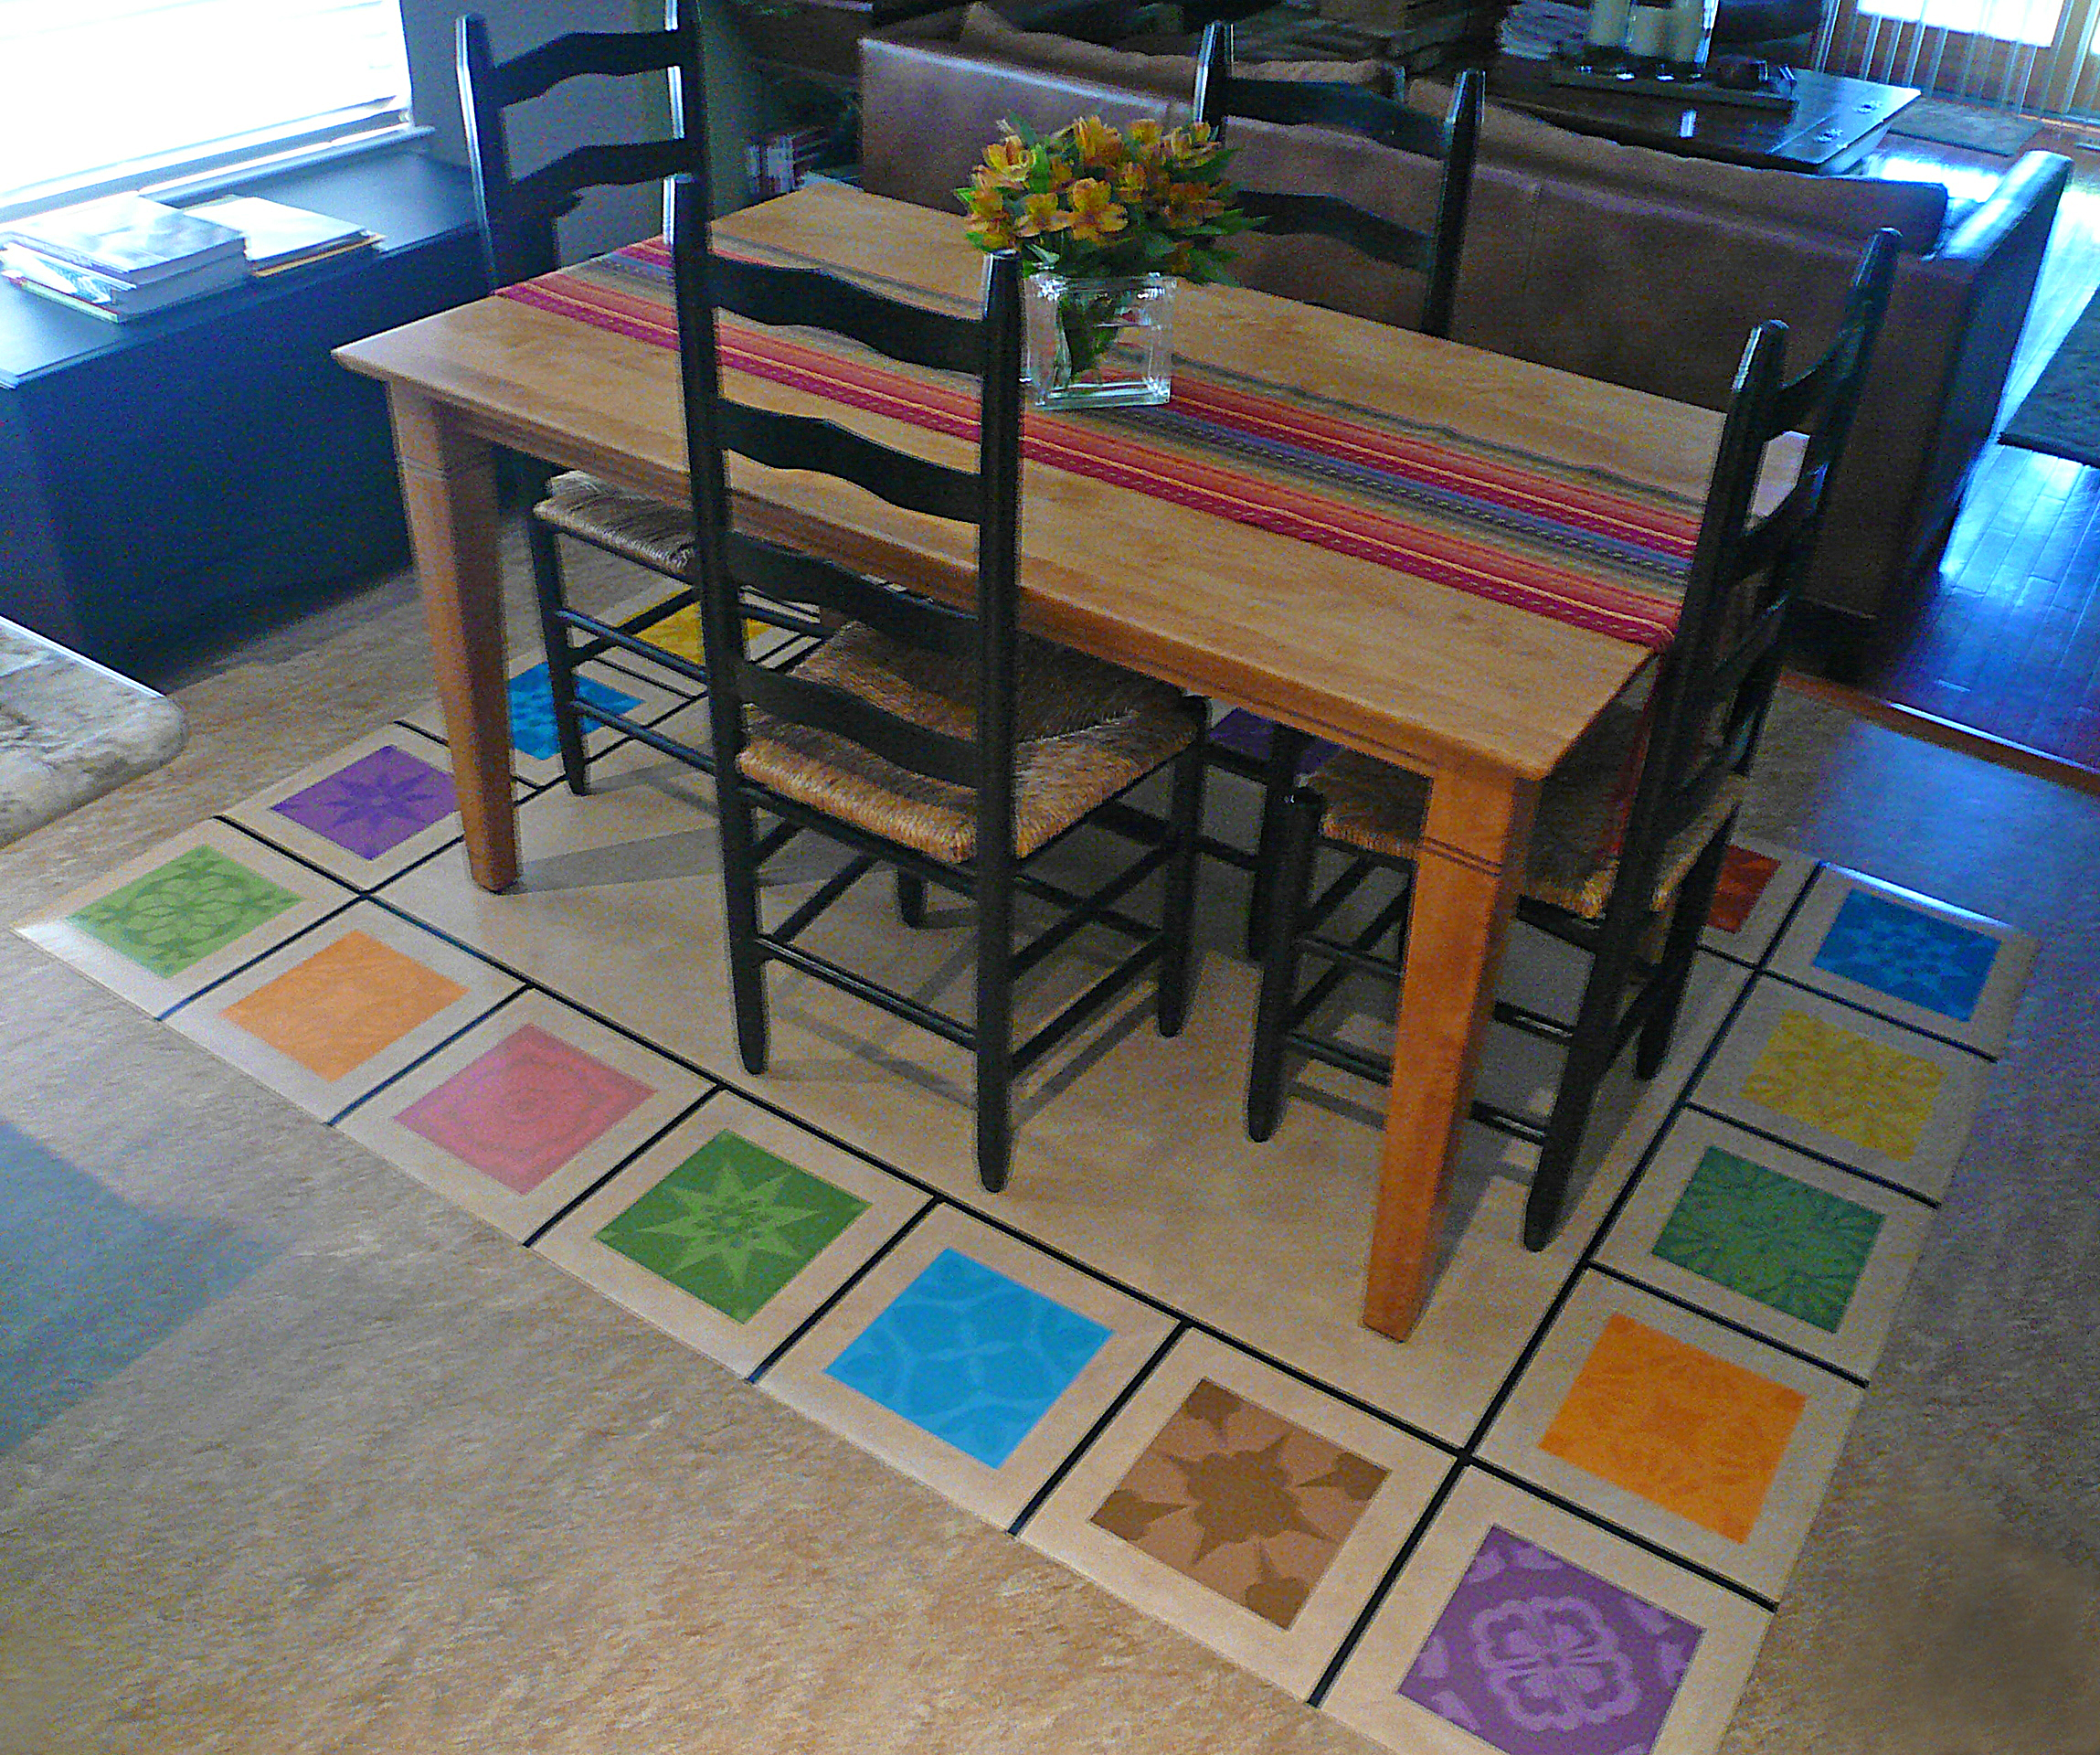 floor mats kitchen floor mat under table floor mat JHC kitchen2